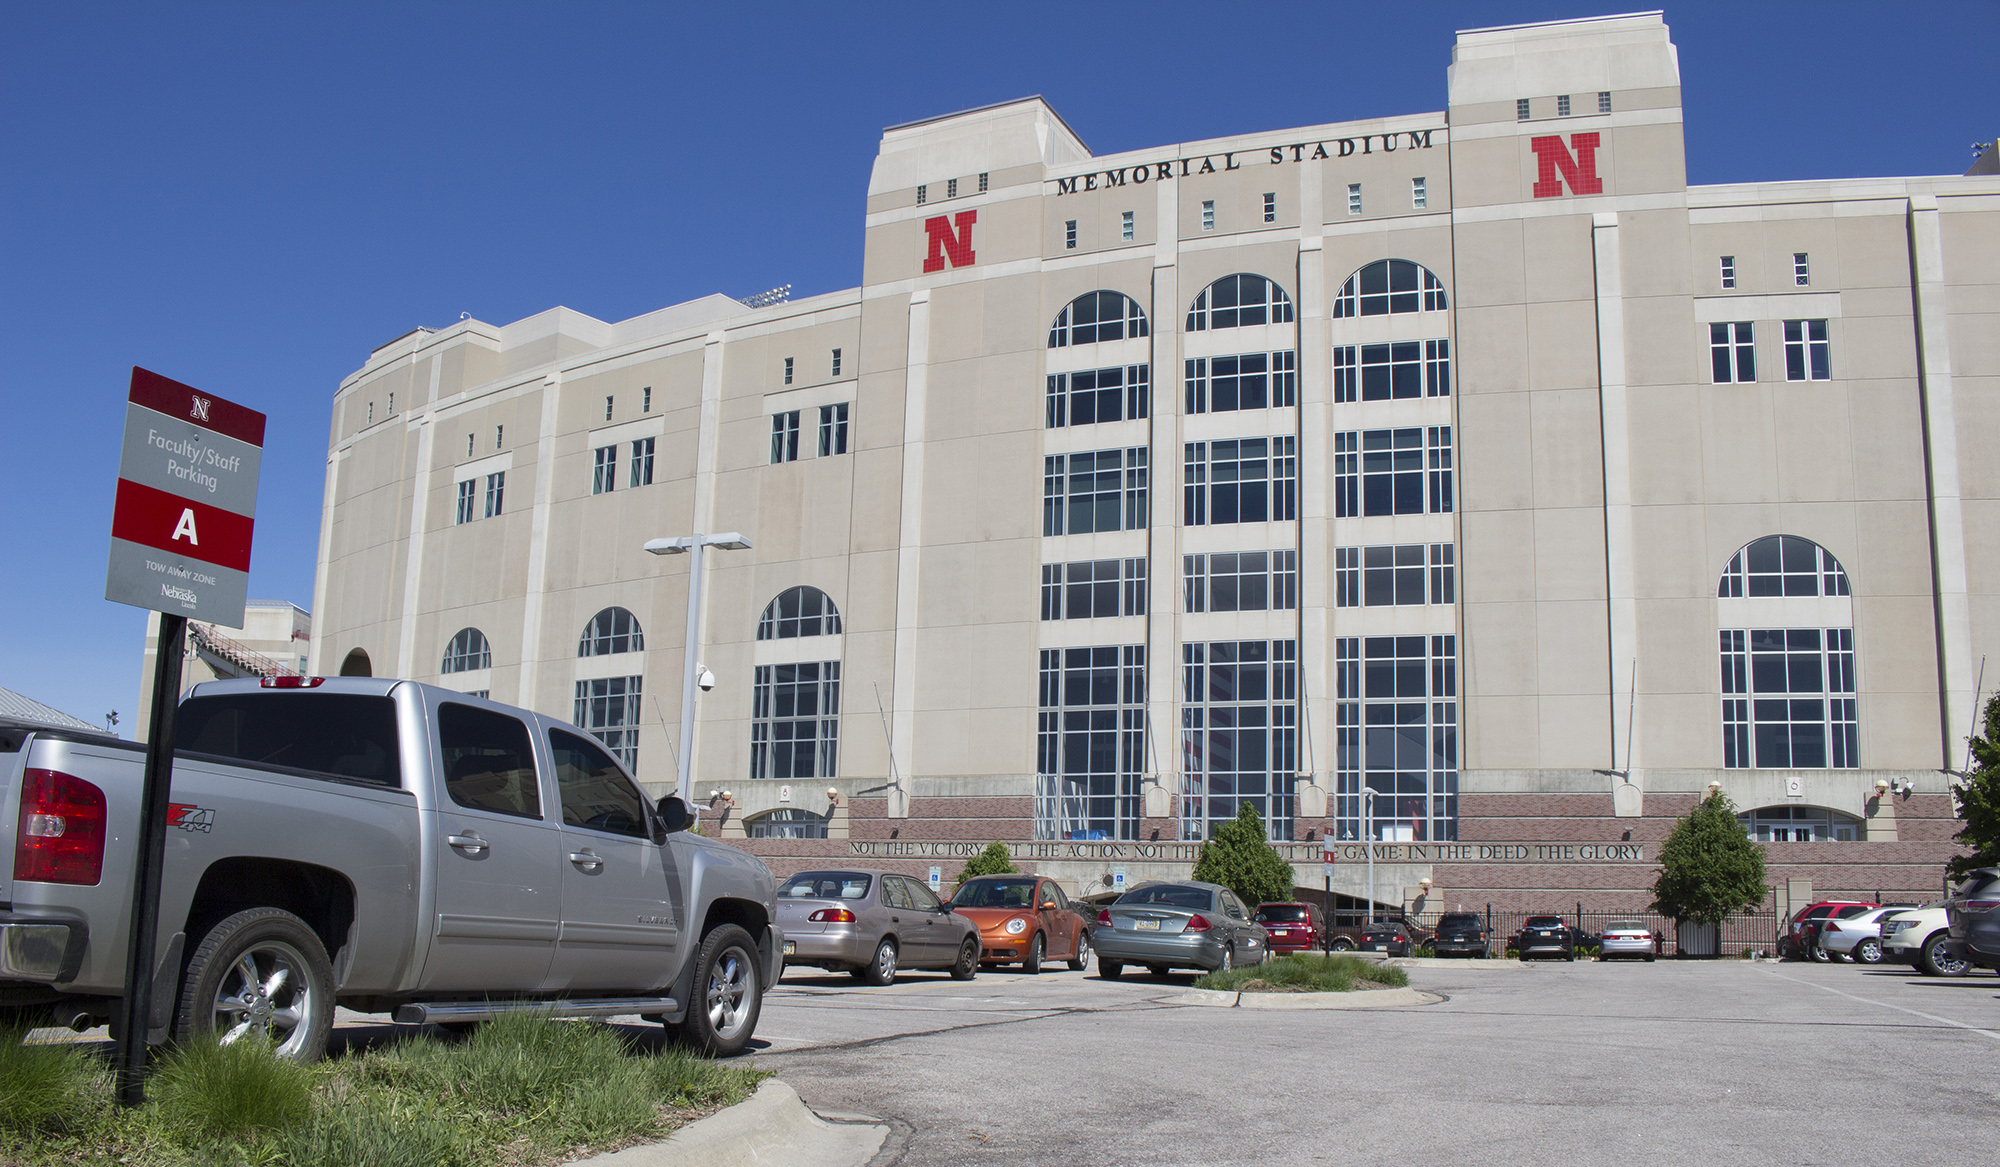 Image of vehicle parked in a designated parking lot by the Memorial Stadium